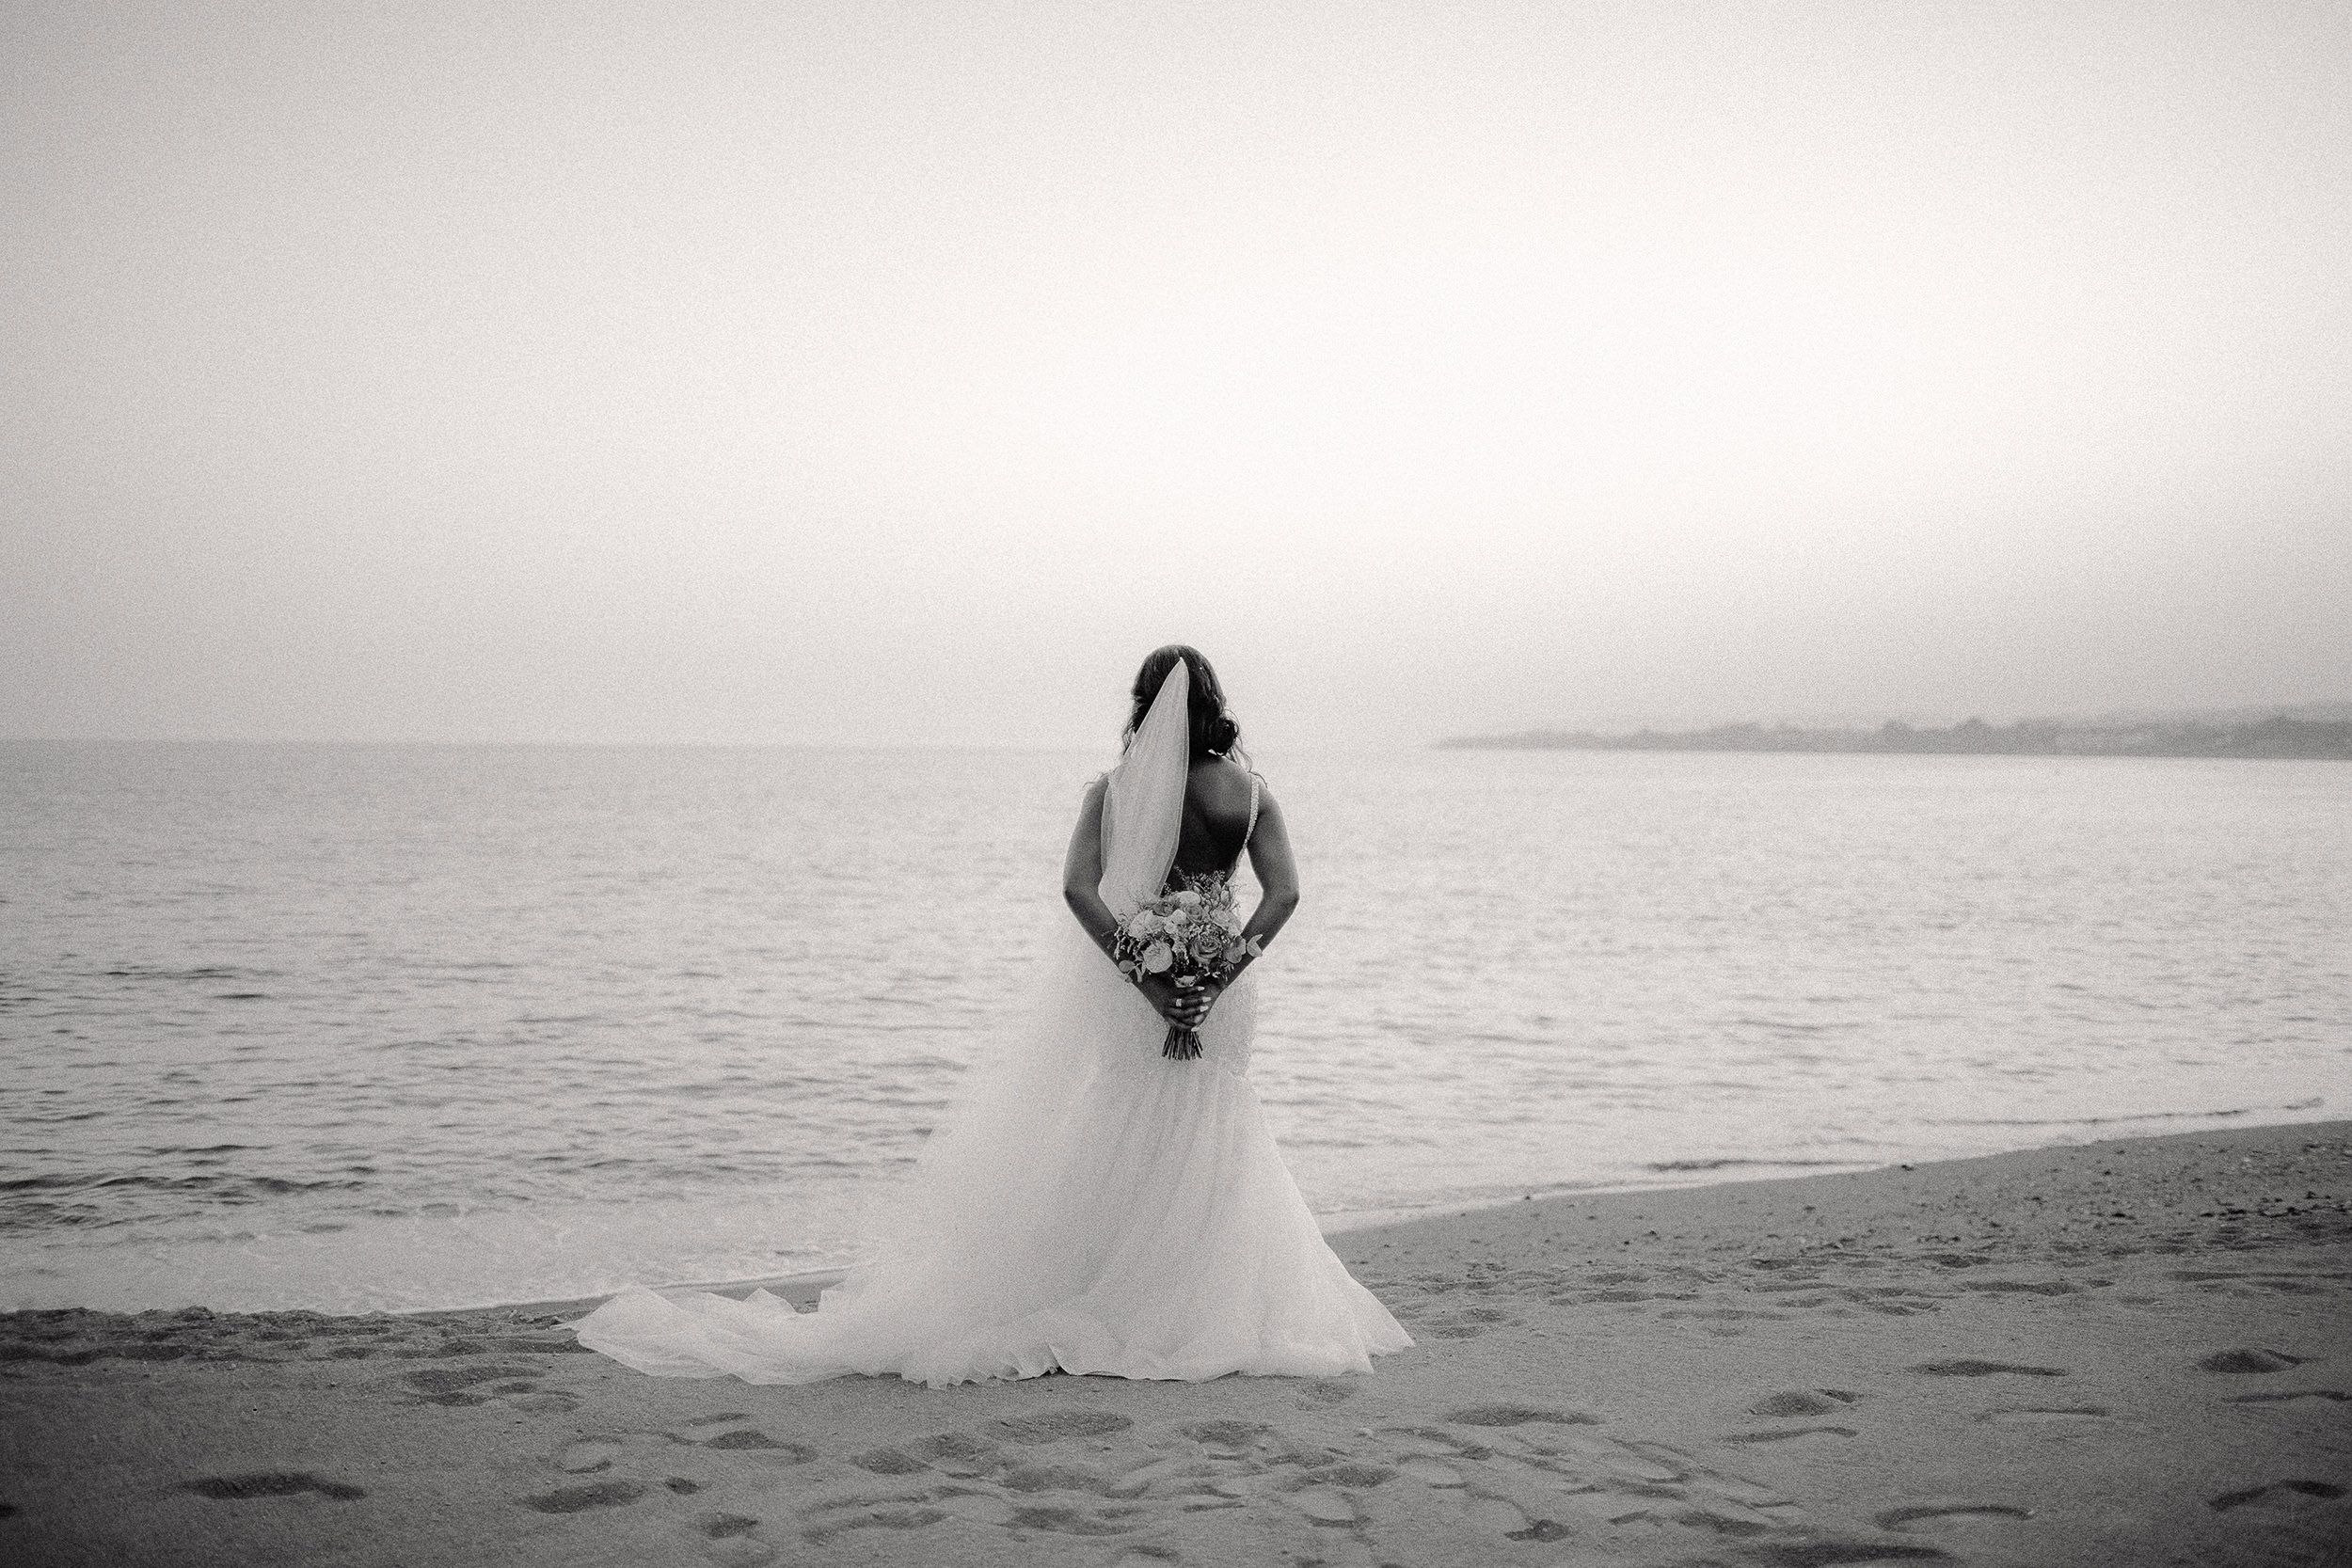 creative wedding photographer in marbella